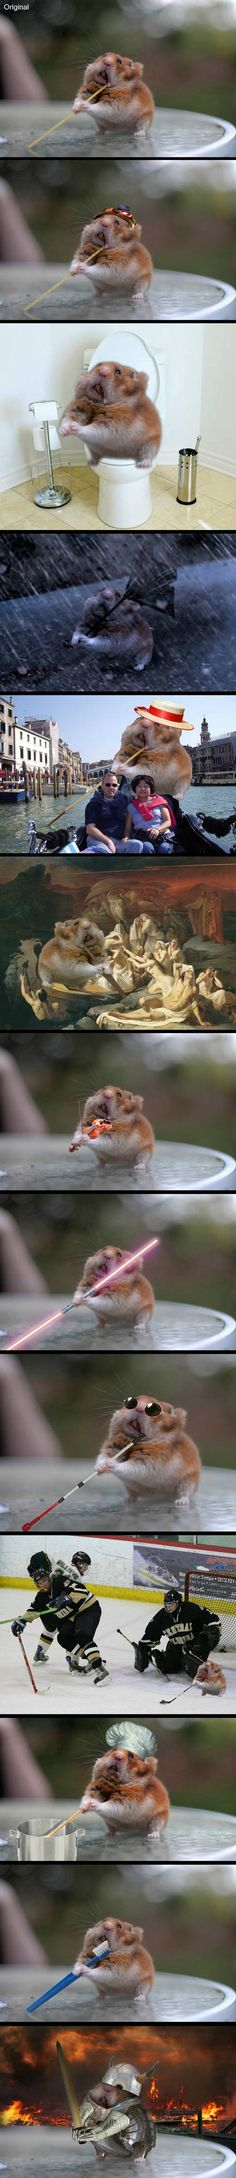 Funny pictures about Just A Day In The Life Of Spaghetti Hamster. Oh, and cool pics about Just A Day In The Life Of Spaghetti Hamster. Also, Just A Day In The Life Of Spaghetti Hamster photos. Funny Animal Memes, Cute Funny Animals, Funny Animal Pictures, Funny Cute, Funny Memes, Hilarious, Funny Pics, Funny Stuff, Funny Hamsters